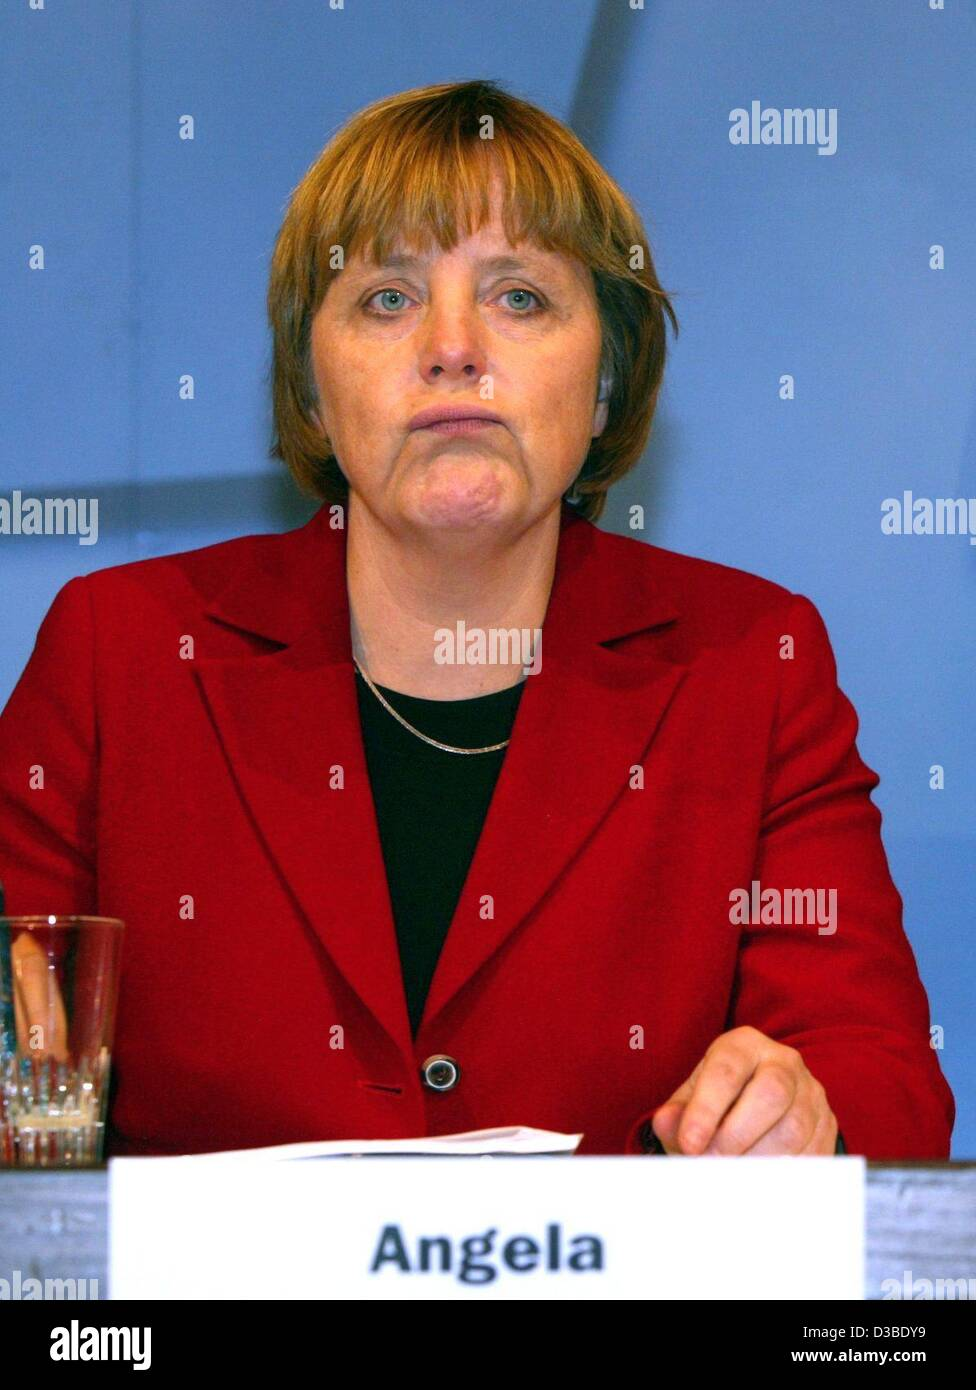 (dpa) - Angela Merkel, Chairwoman of the CDU party, stands behind a lectern in the election campaign for the upcoming regional elections in the German state Lower Saxony, Osnabrueck, Germany, 23 January 2003. Merkel accuses Chancellor Schroeder of not taking the work of weapon inspectors of the Unit Stock Photo